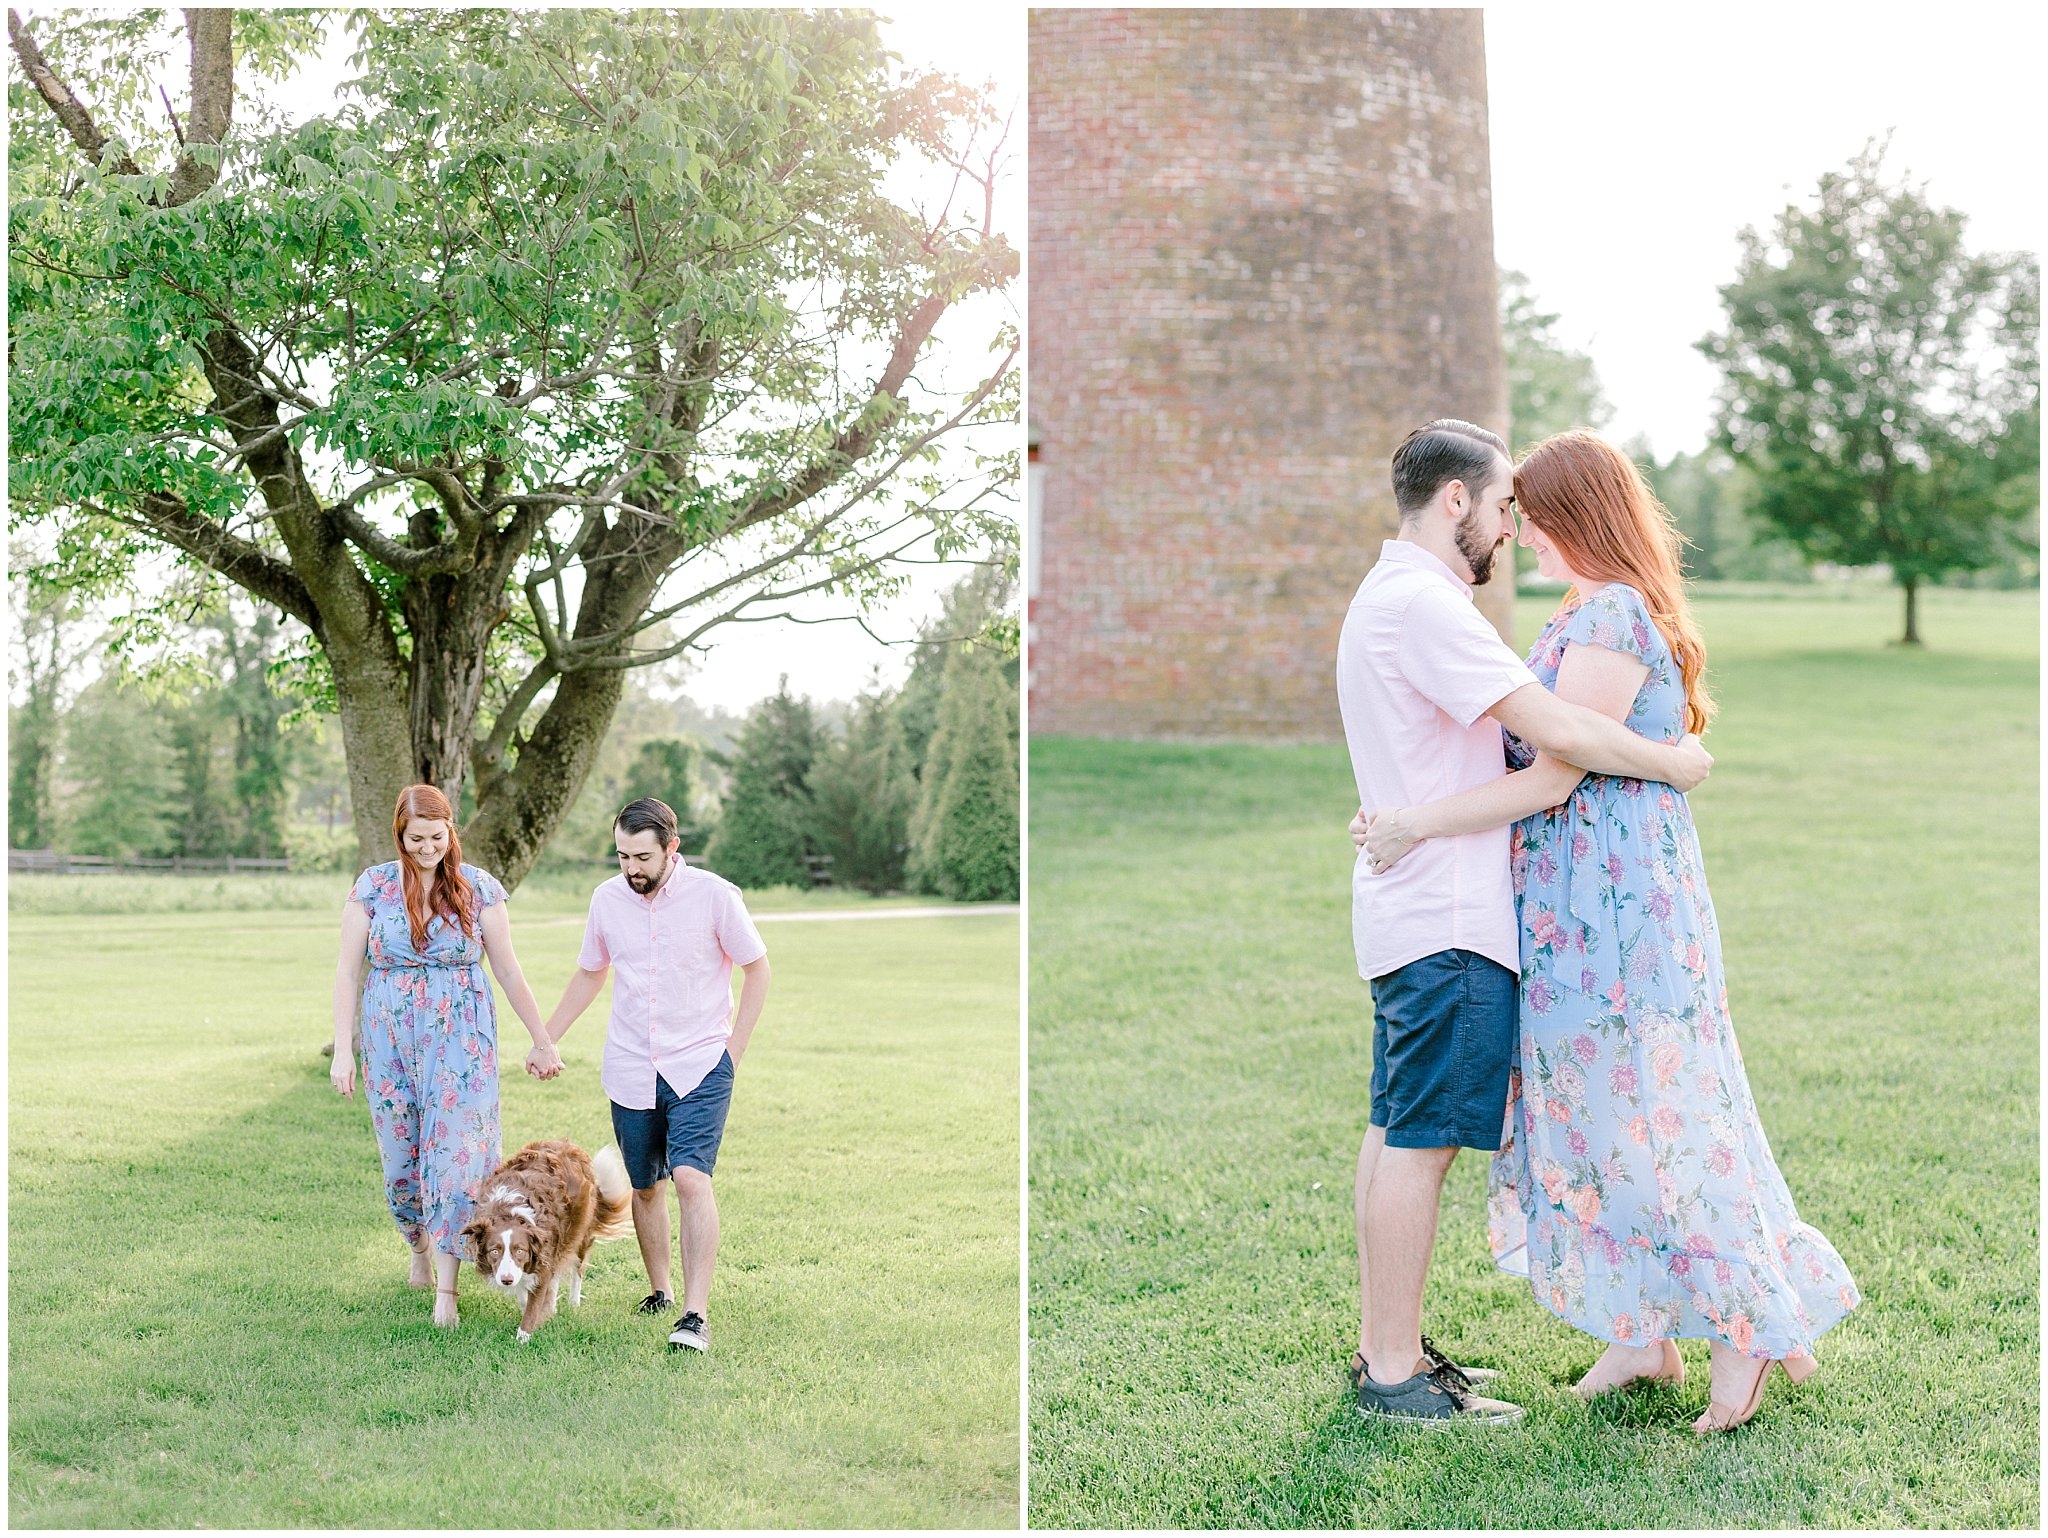 Manor house at prophecy Creek Blue Bell PA wedding venue summertime field engagement session lehigh valley based wedding and lifestyle photographe_0005.jpg